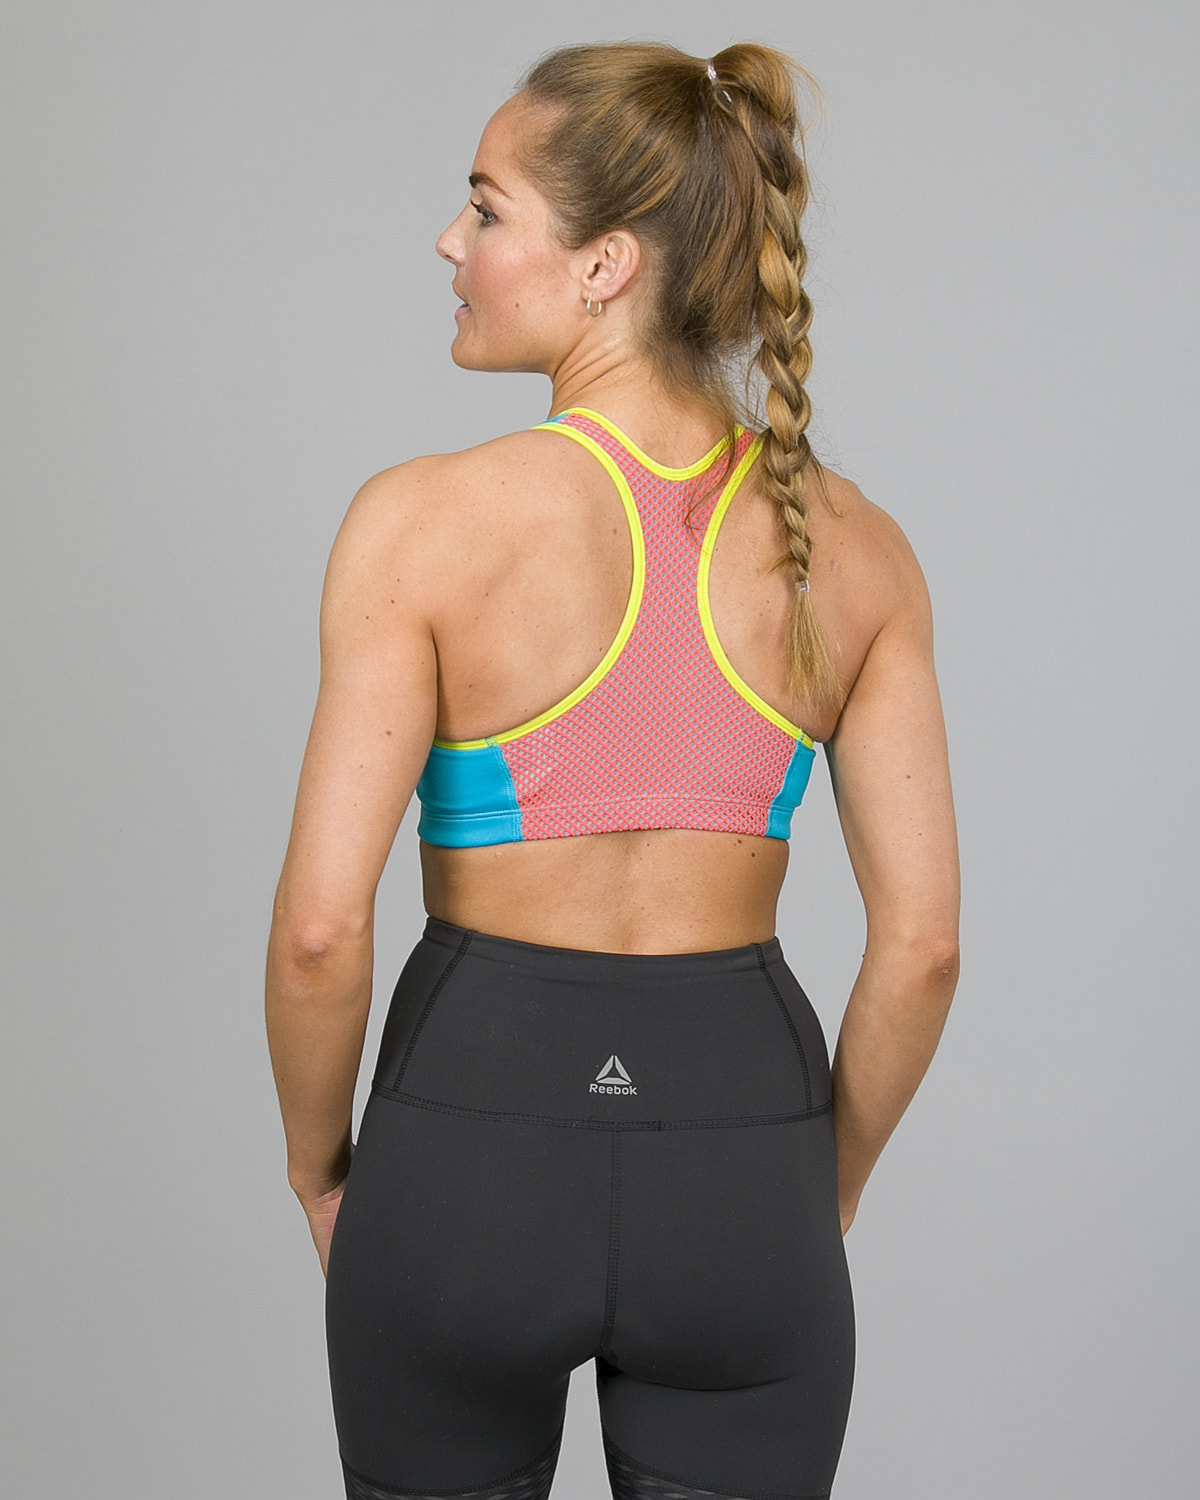 Shock Absorber Active Crop Top 04no0-7o0 c